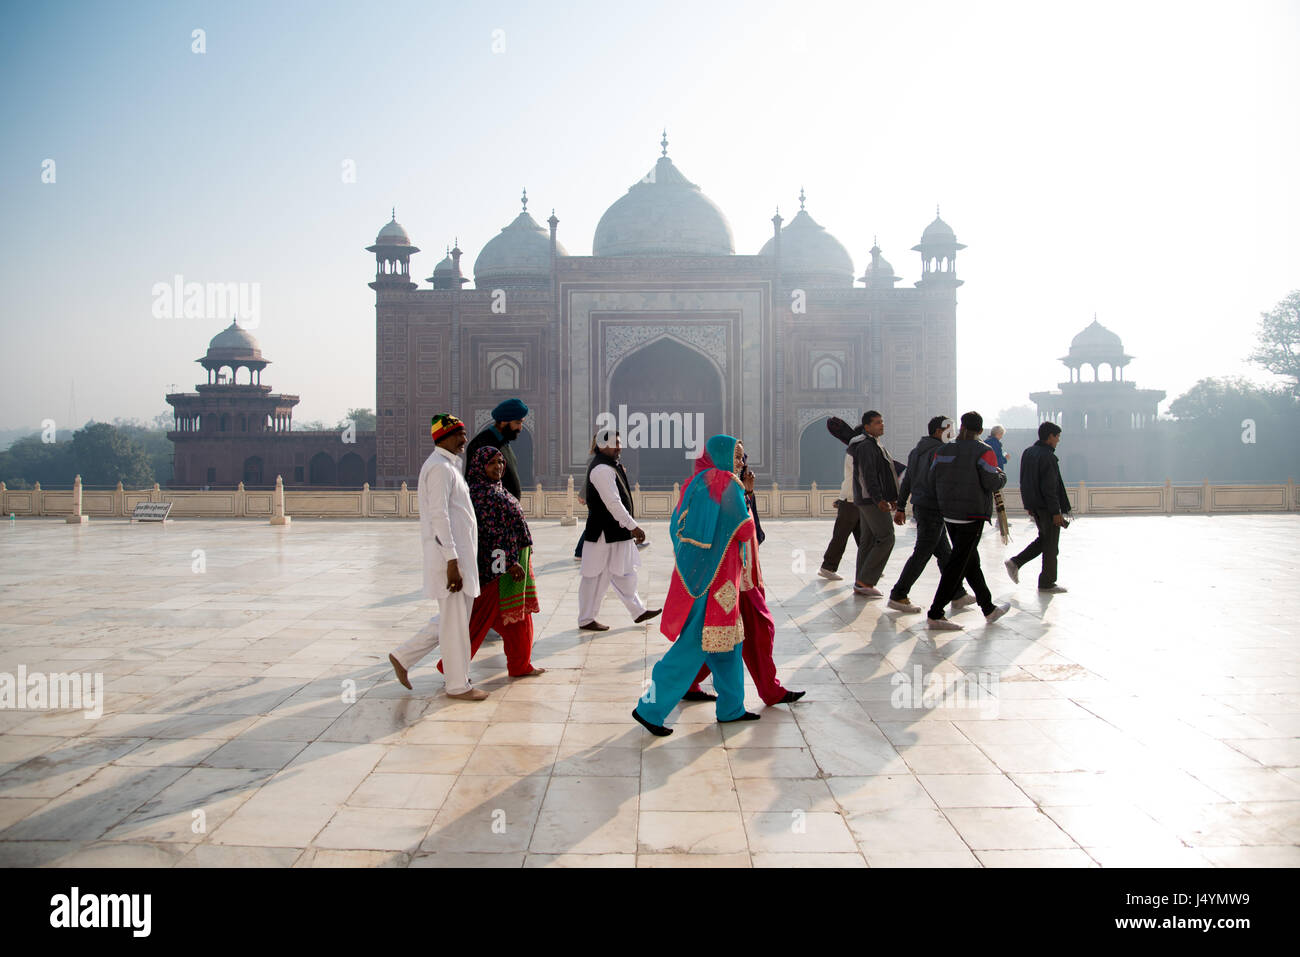 Group of Tourists in colourful clothing at Taj Mahal complex in Agra, India Stock Photo